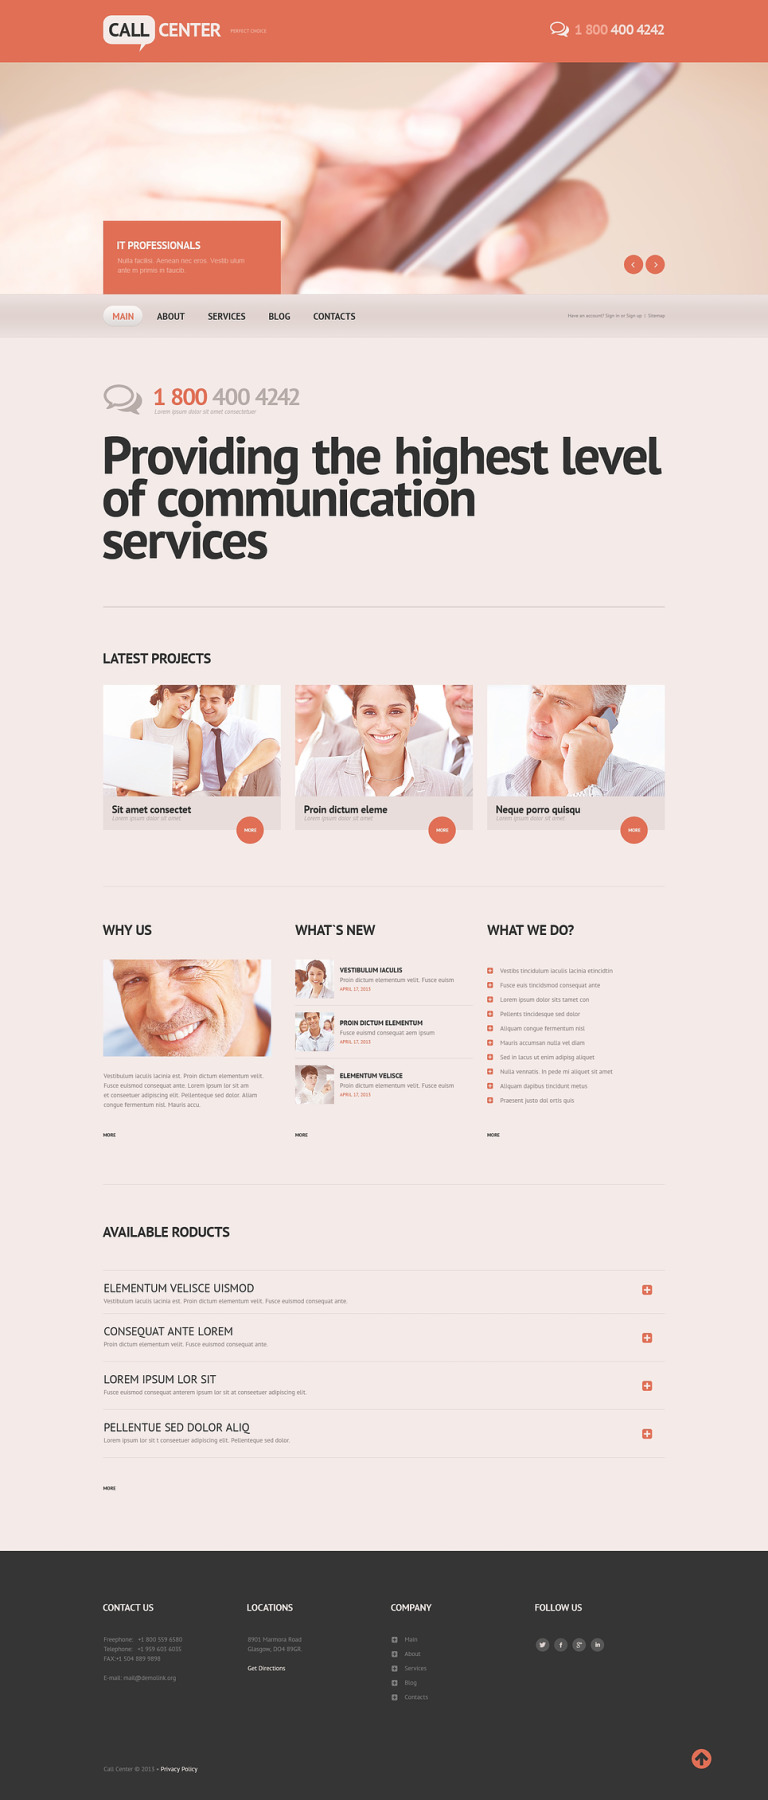 Call Center Responsive Website Template New Screenshots BIG